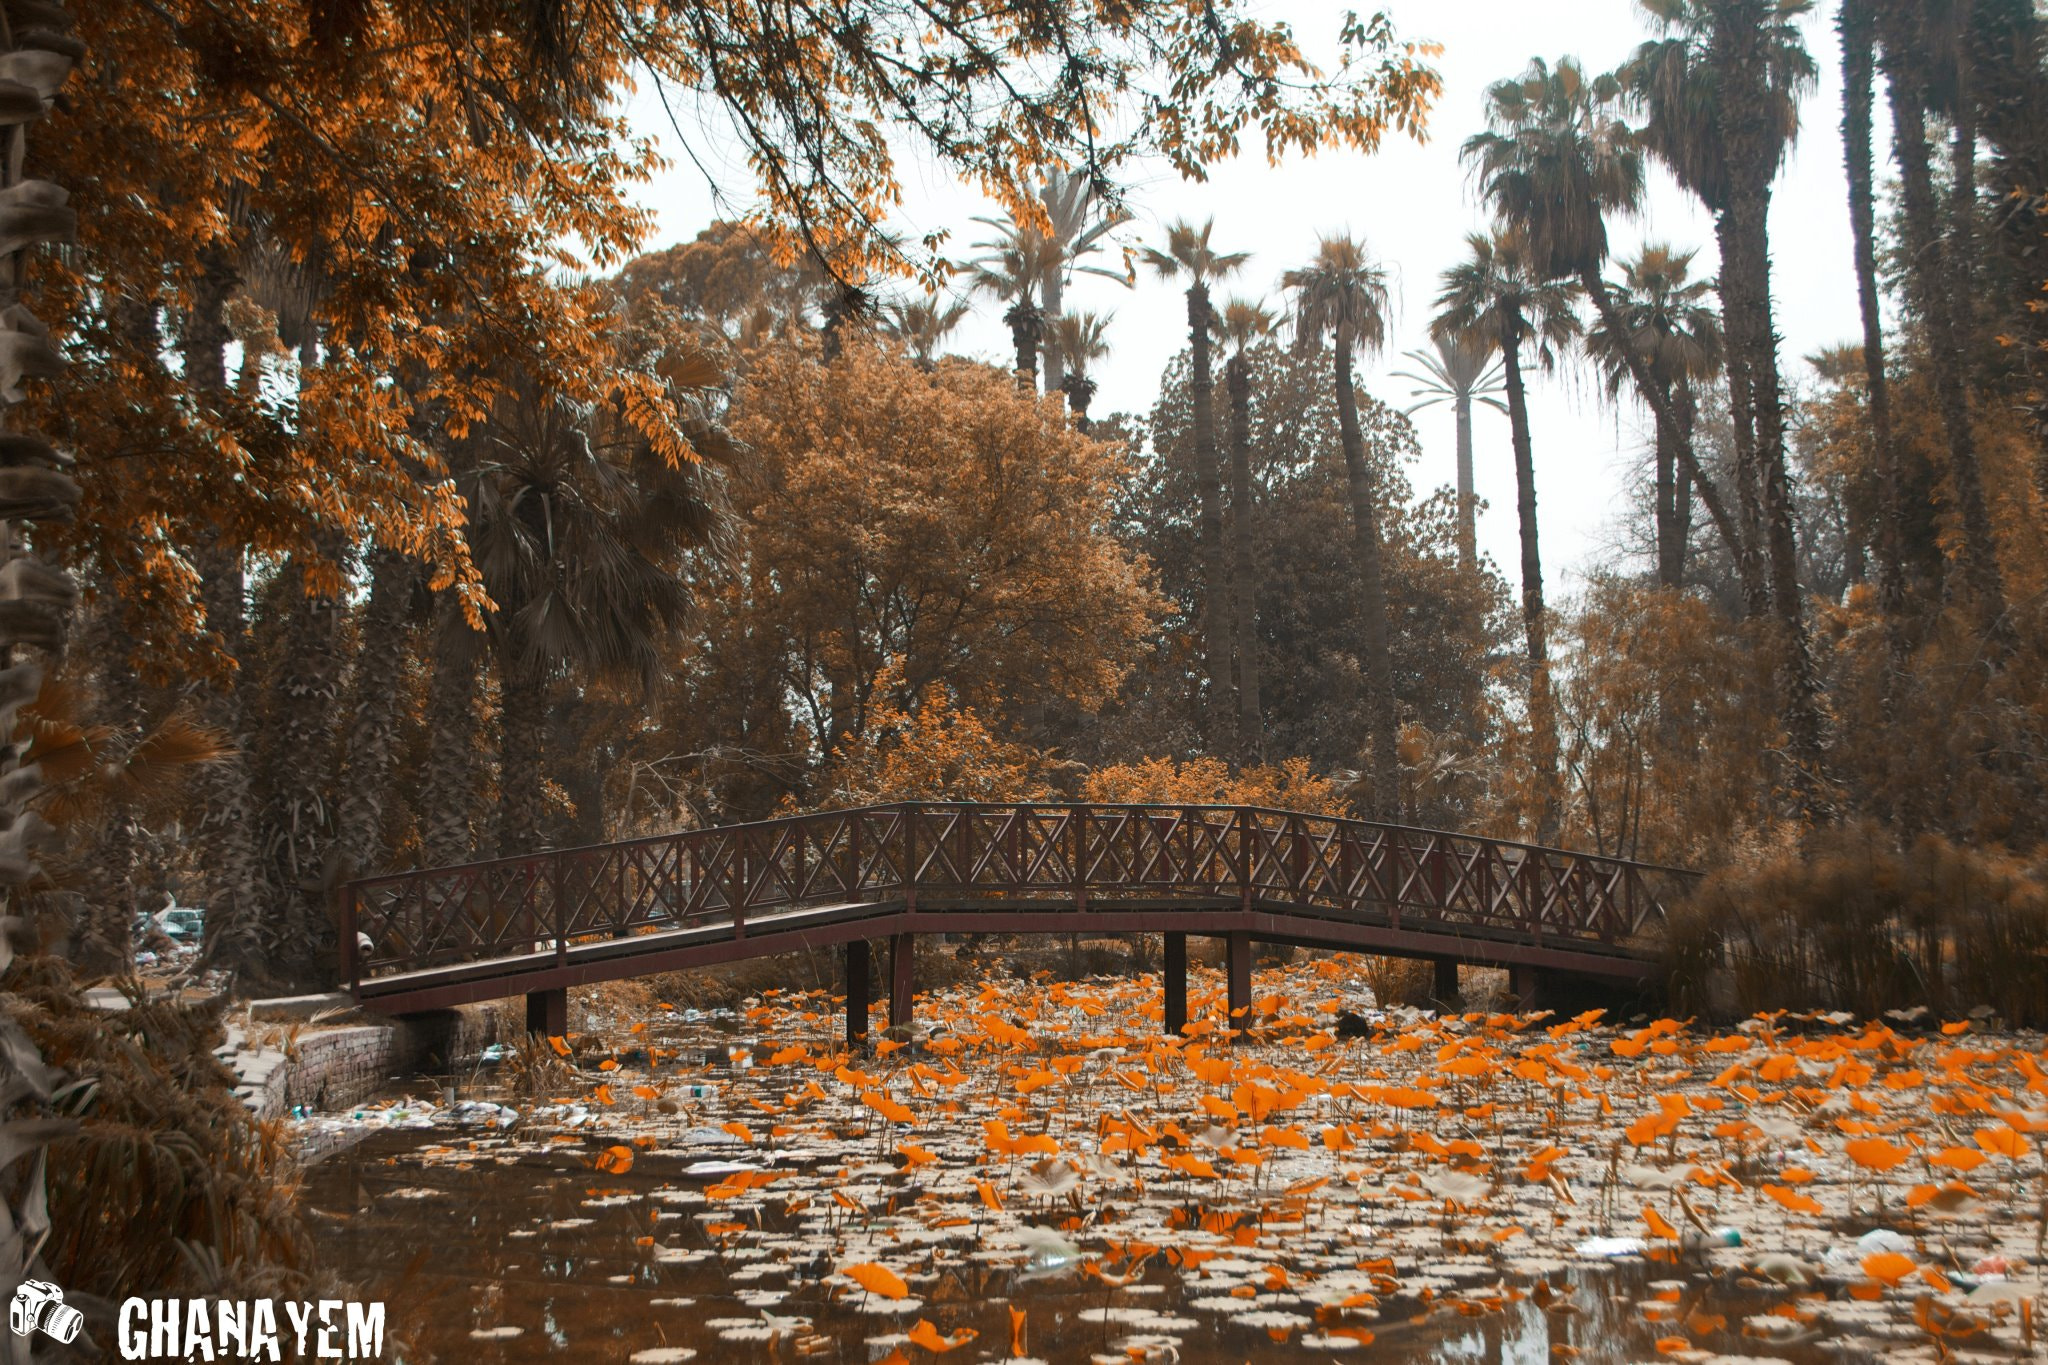 Photograph Its Orange Season by jamil ghanayem on 500px